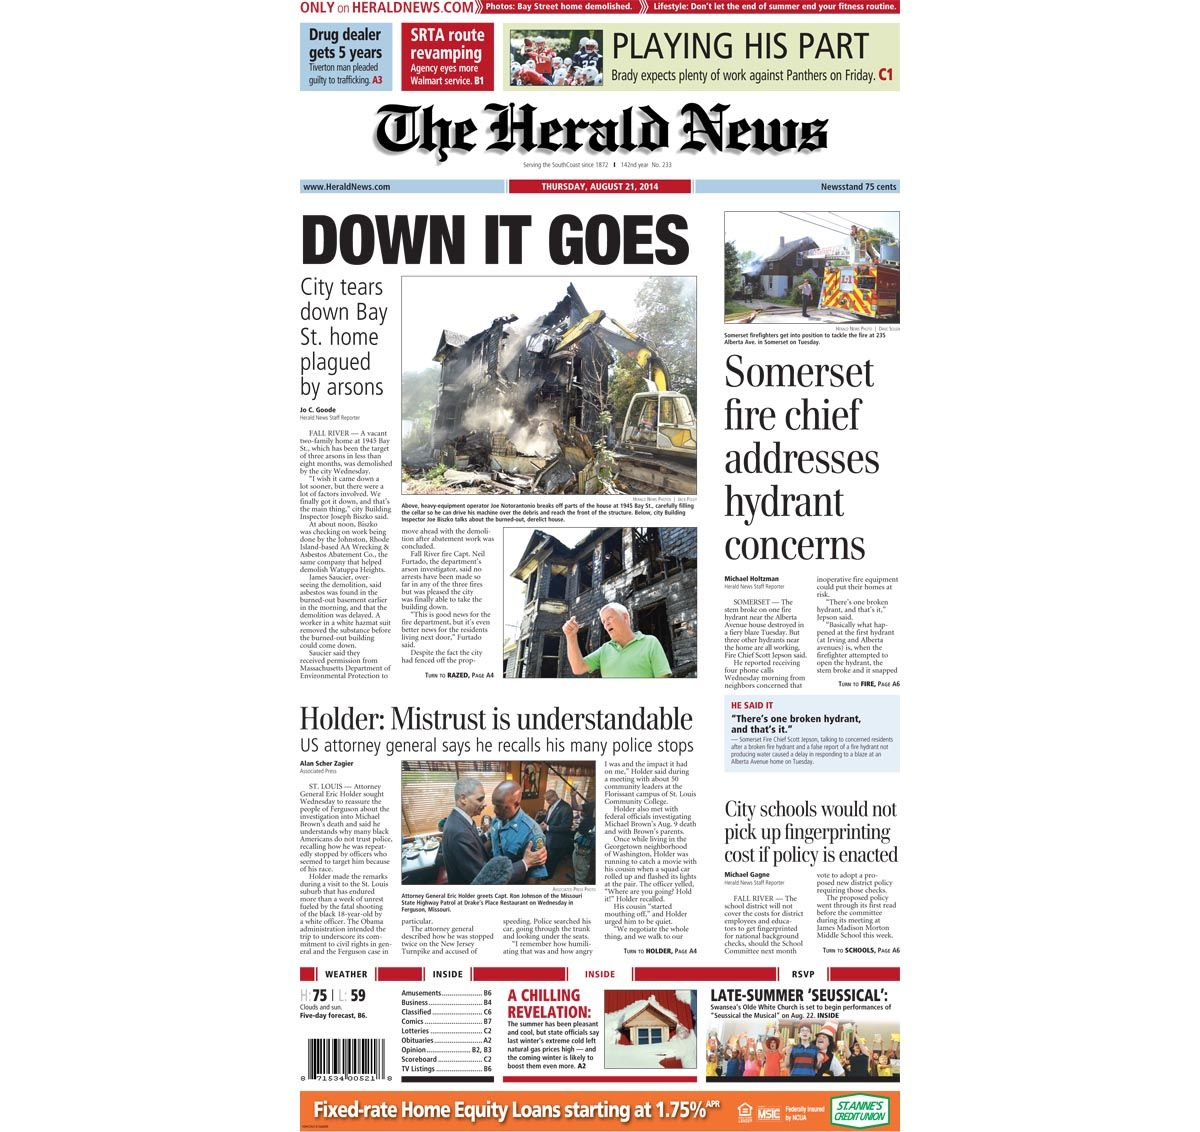 The front page of today's Herald News. Read the stories at